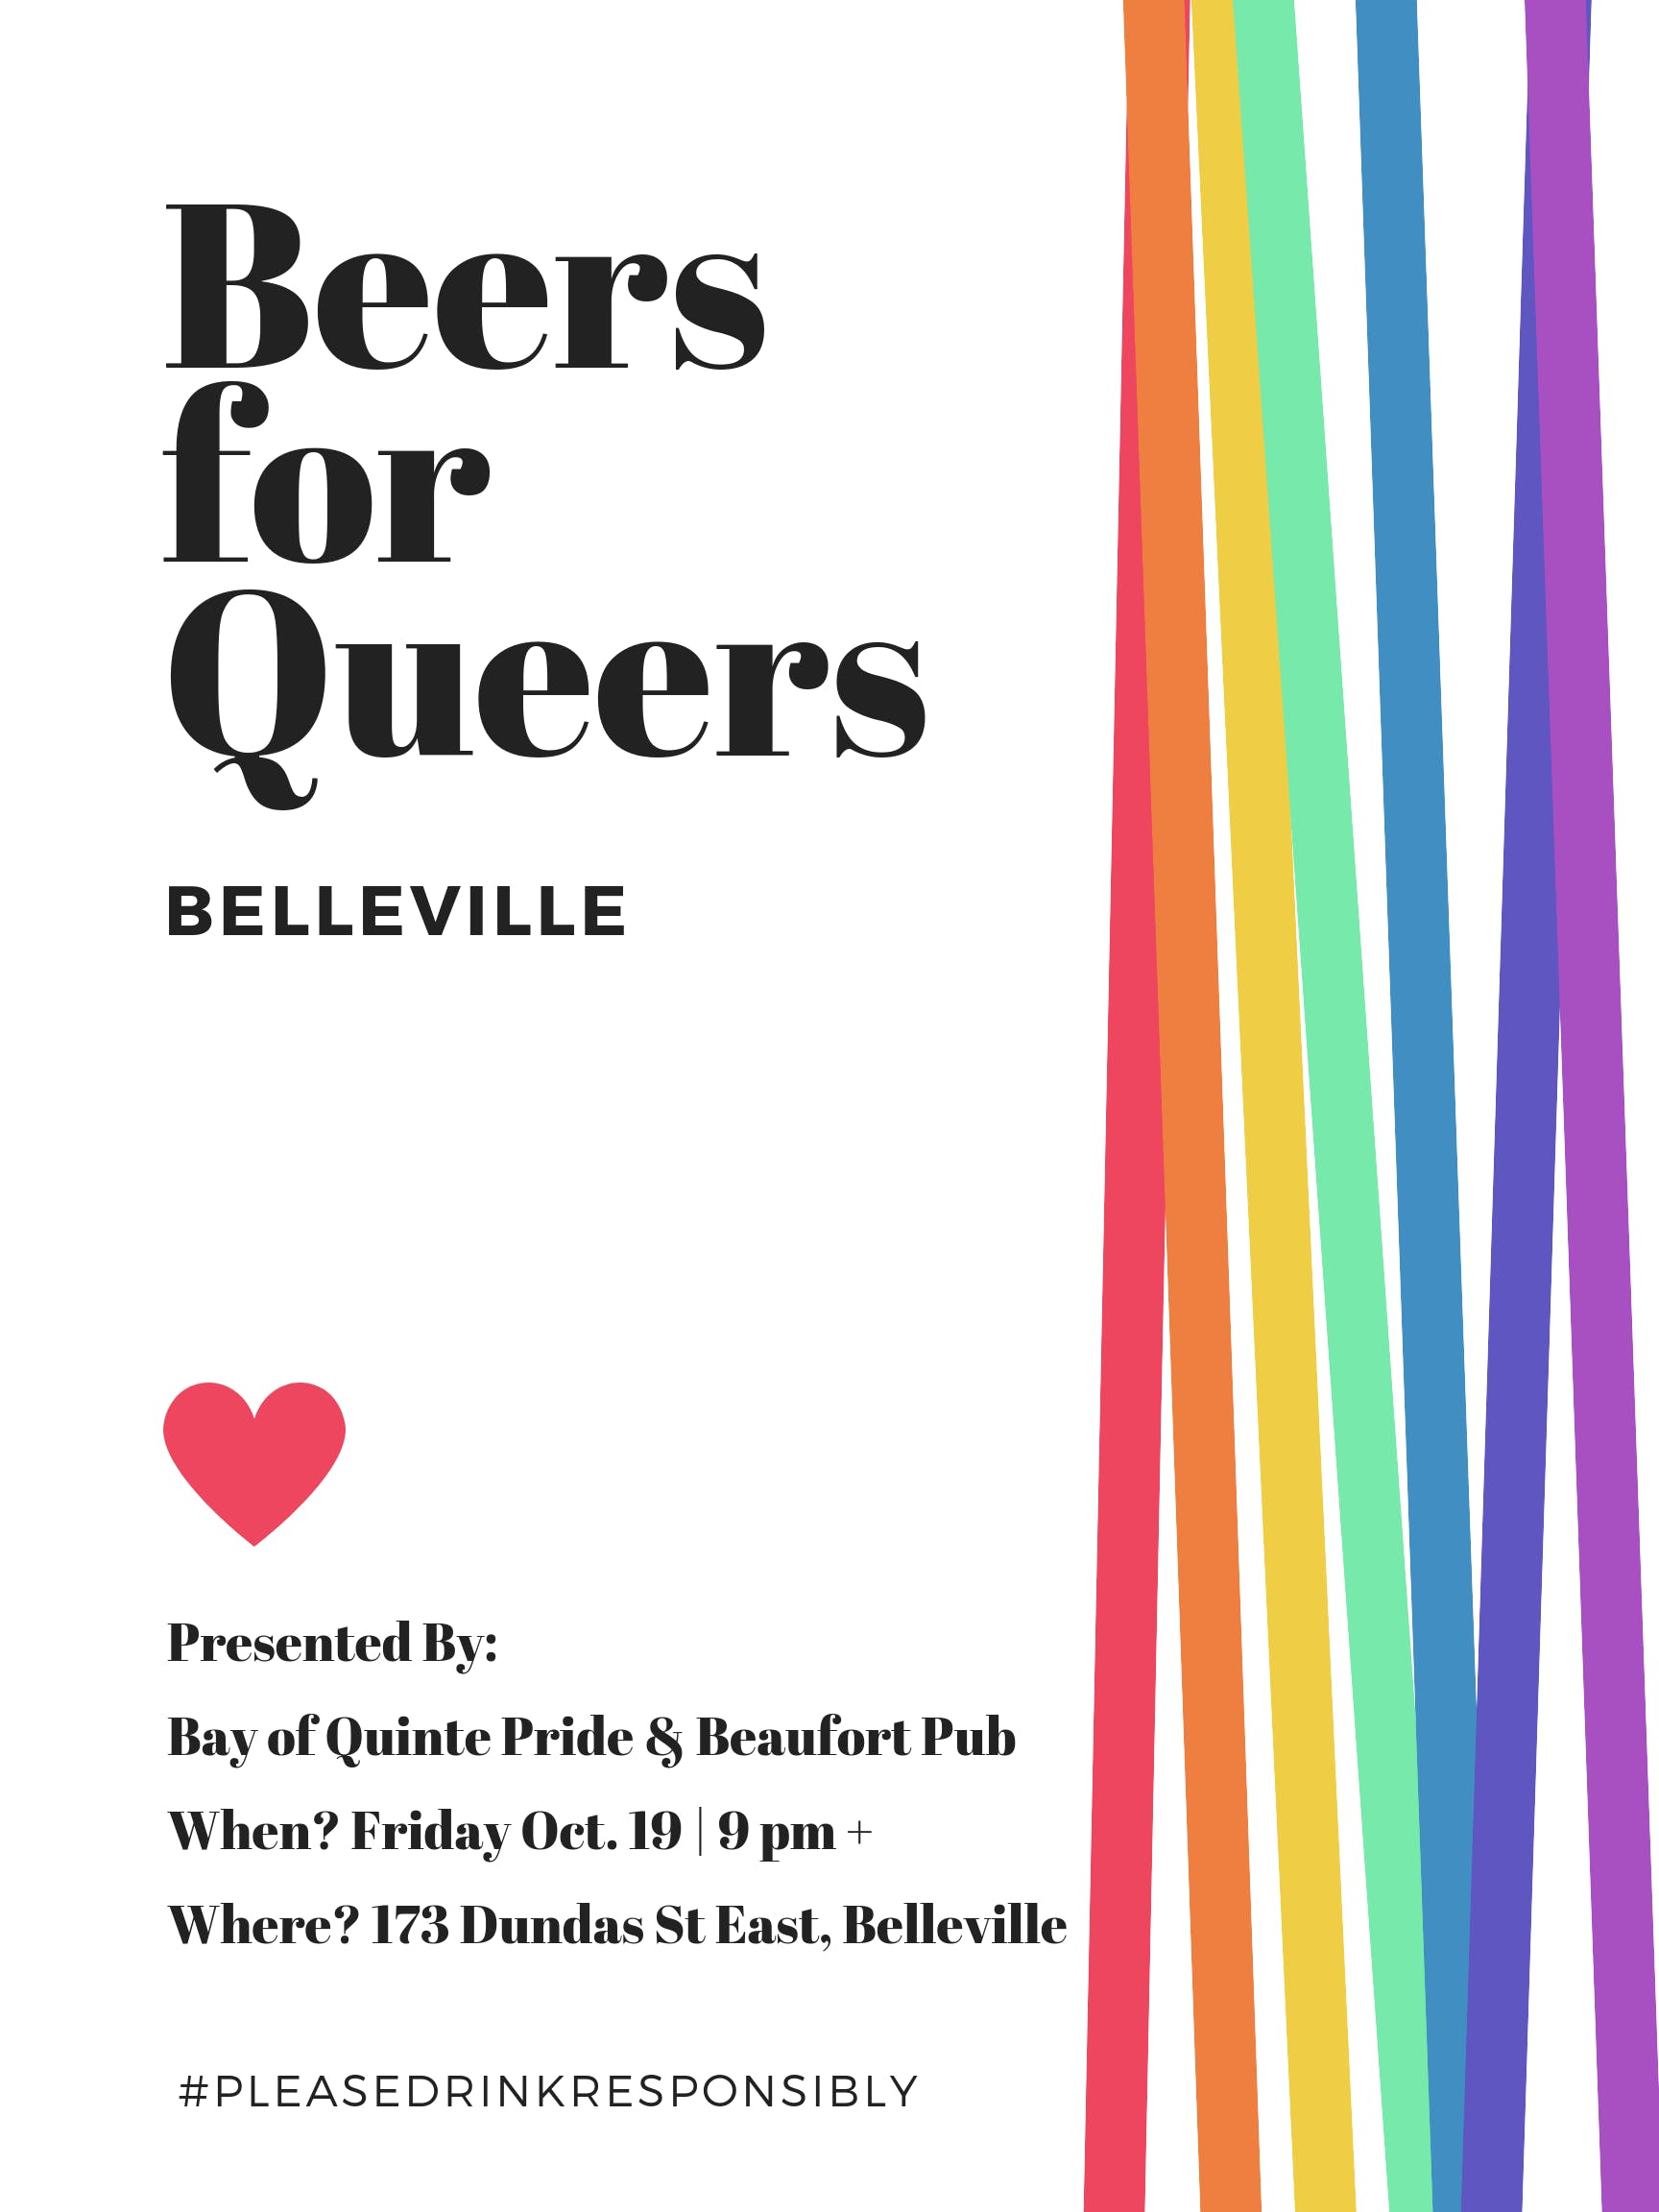 Beers for Queers Belleville - Friday Nov. 16